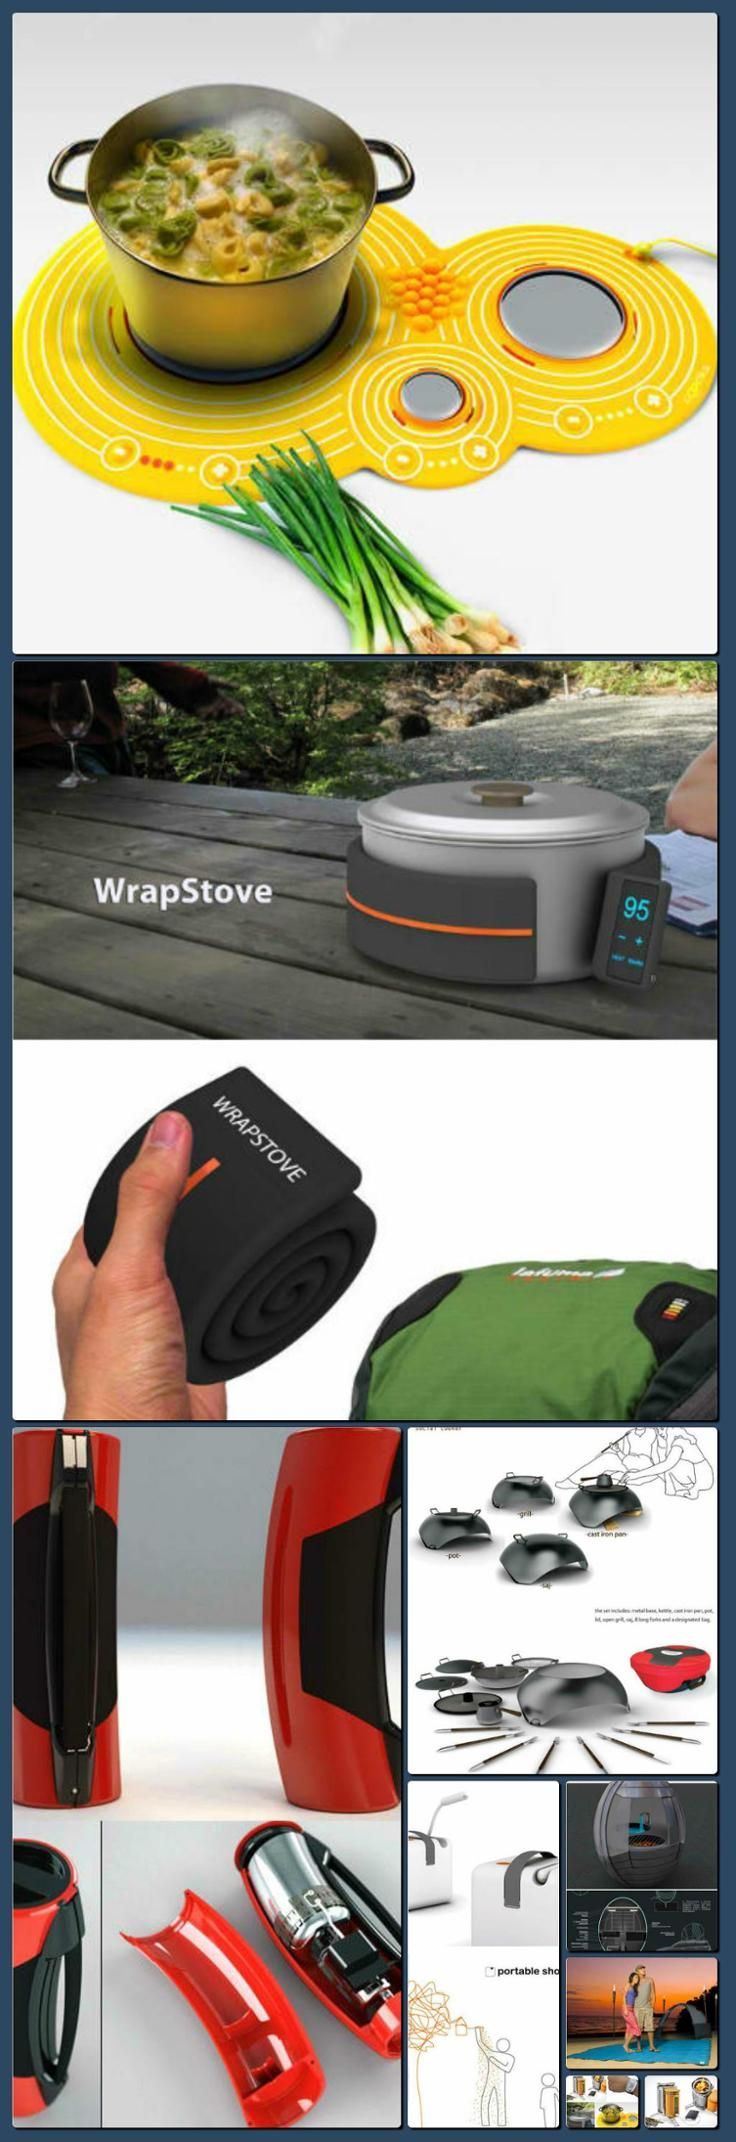 The Future of Camping: 13 Cool, Clever & Offbeat Gadgets | WebEcoist [Collage made with one click using http://pagecollage.com] #pagecollage